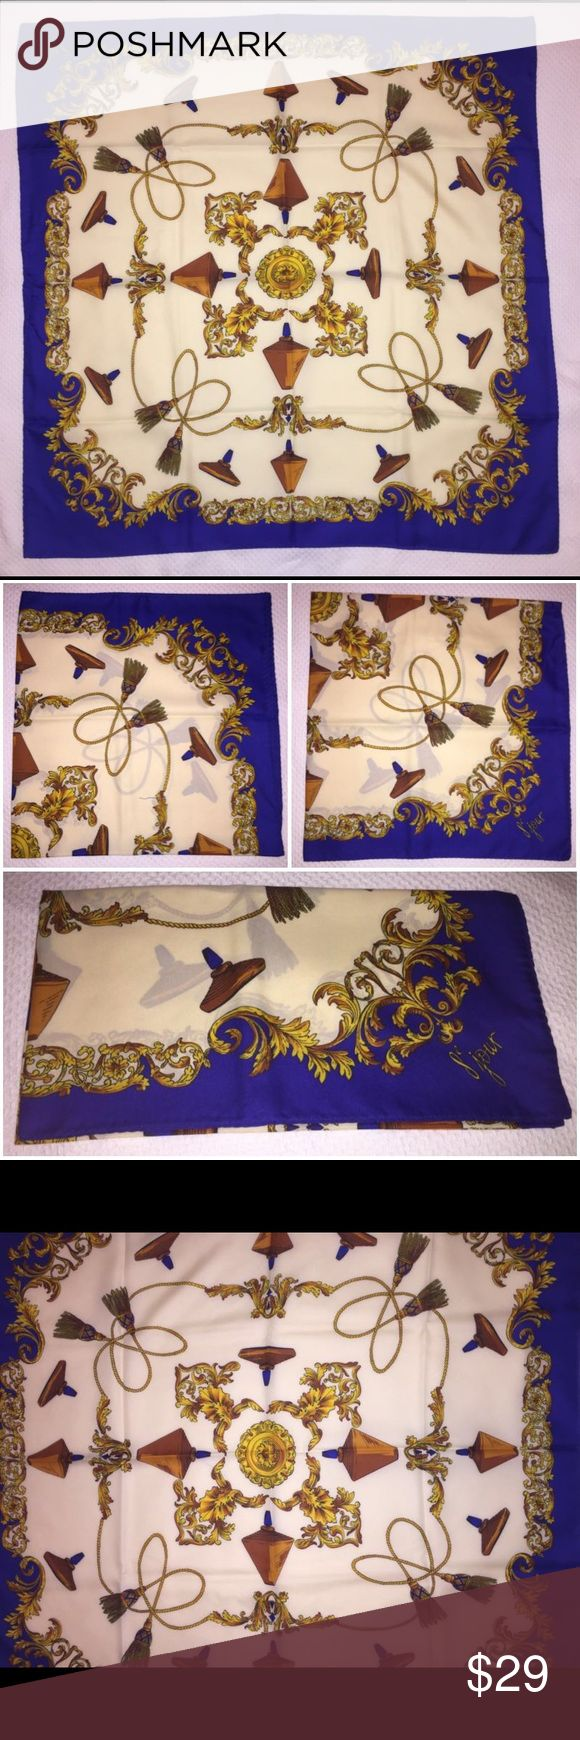 """Vintage 8e Jour Perfume Yves Rocher Italian Scarf Yves Rocher 8e Jour Perfume Print Designer Italian Scarf. Colors: Royal Blue, Cream, & Gold. Measures: 35"""" x 35"""". Material: Polyester (made in Italy). Brand New In Package! Yves Rocher Accessories Scarves & Wraps"""